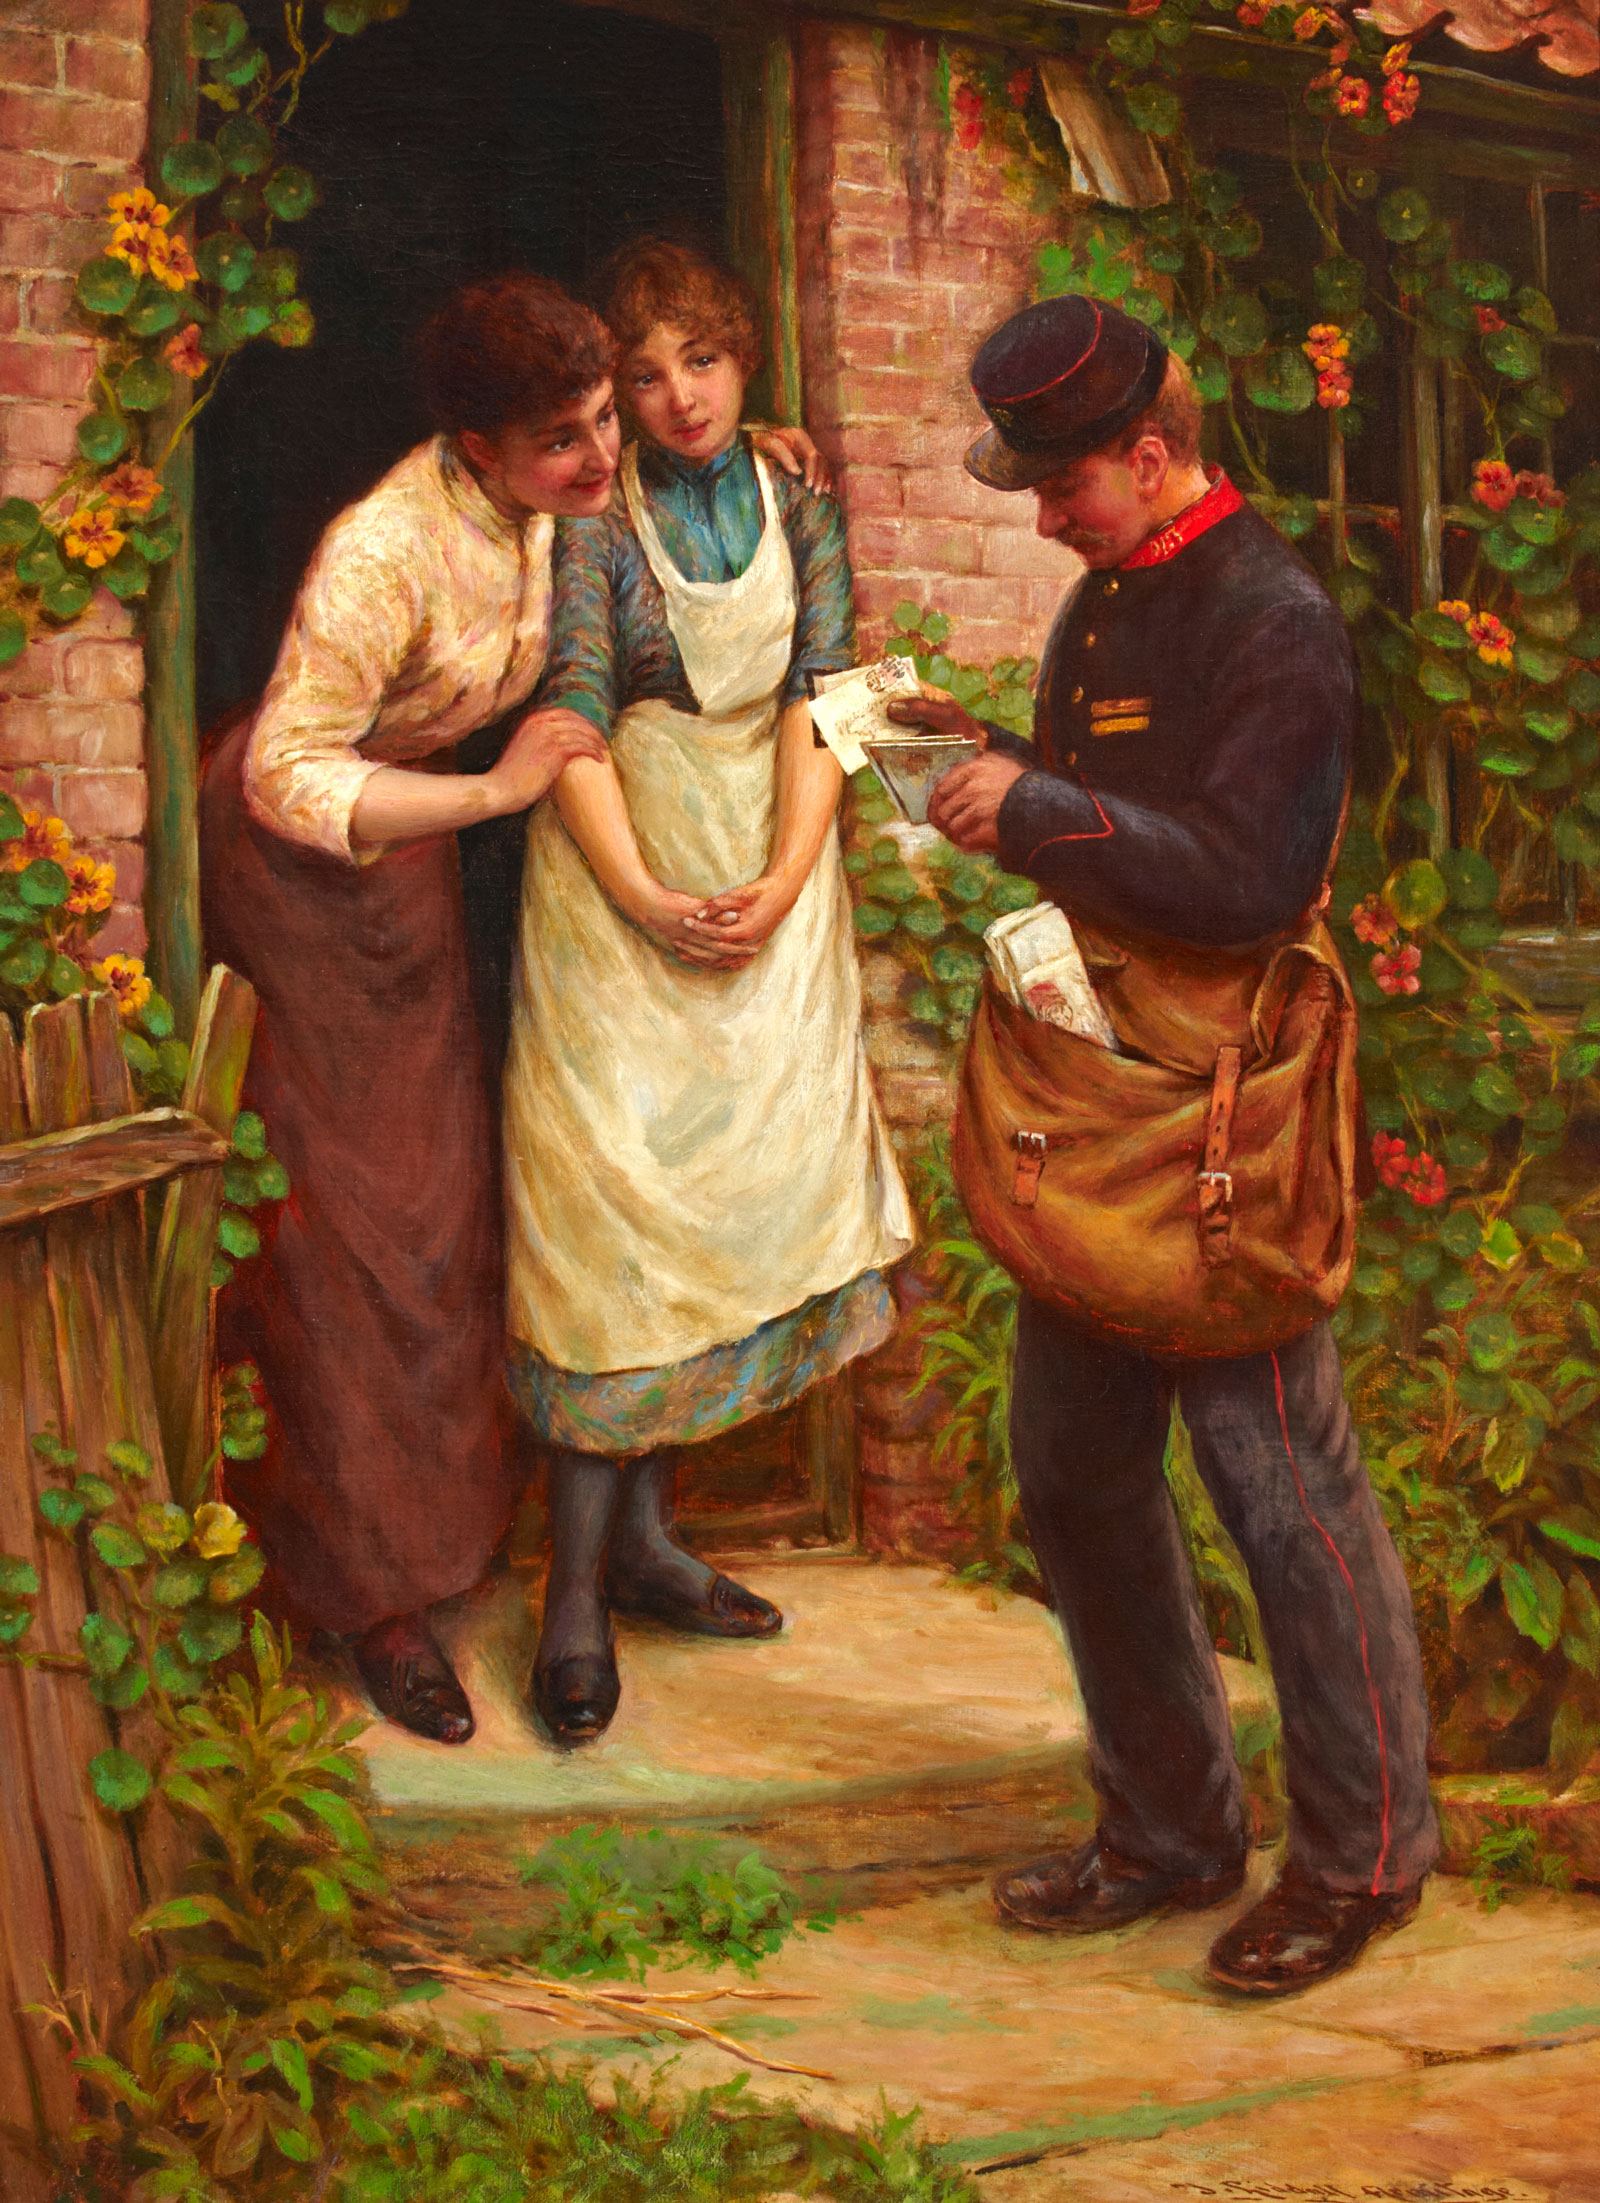 'The Postman', painted 1891 (OB1997.5)